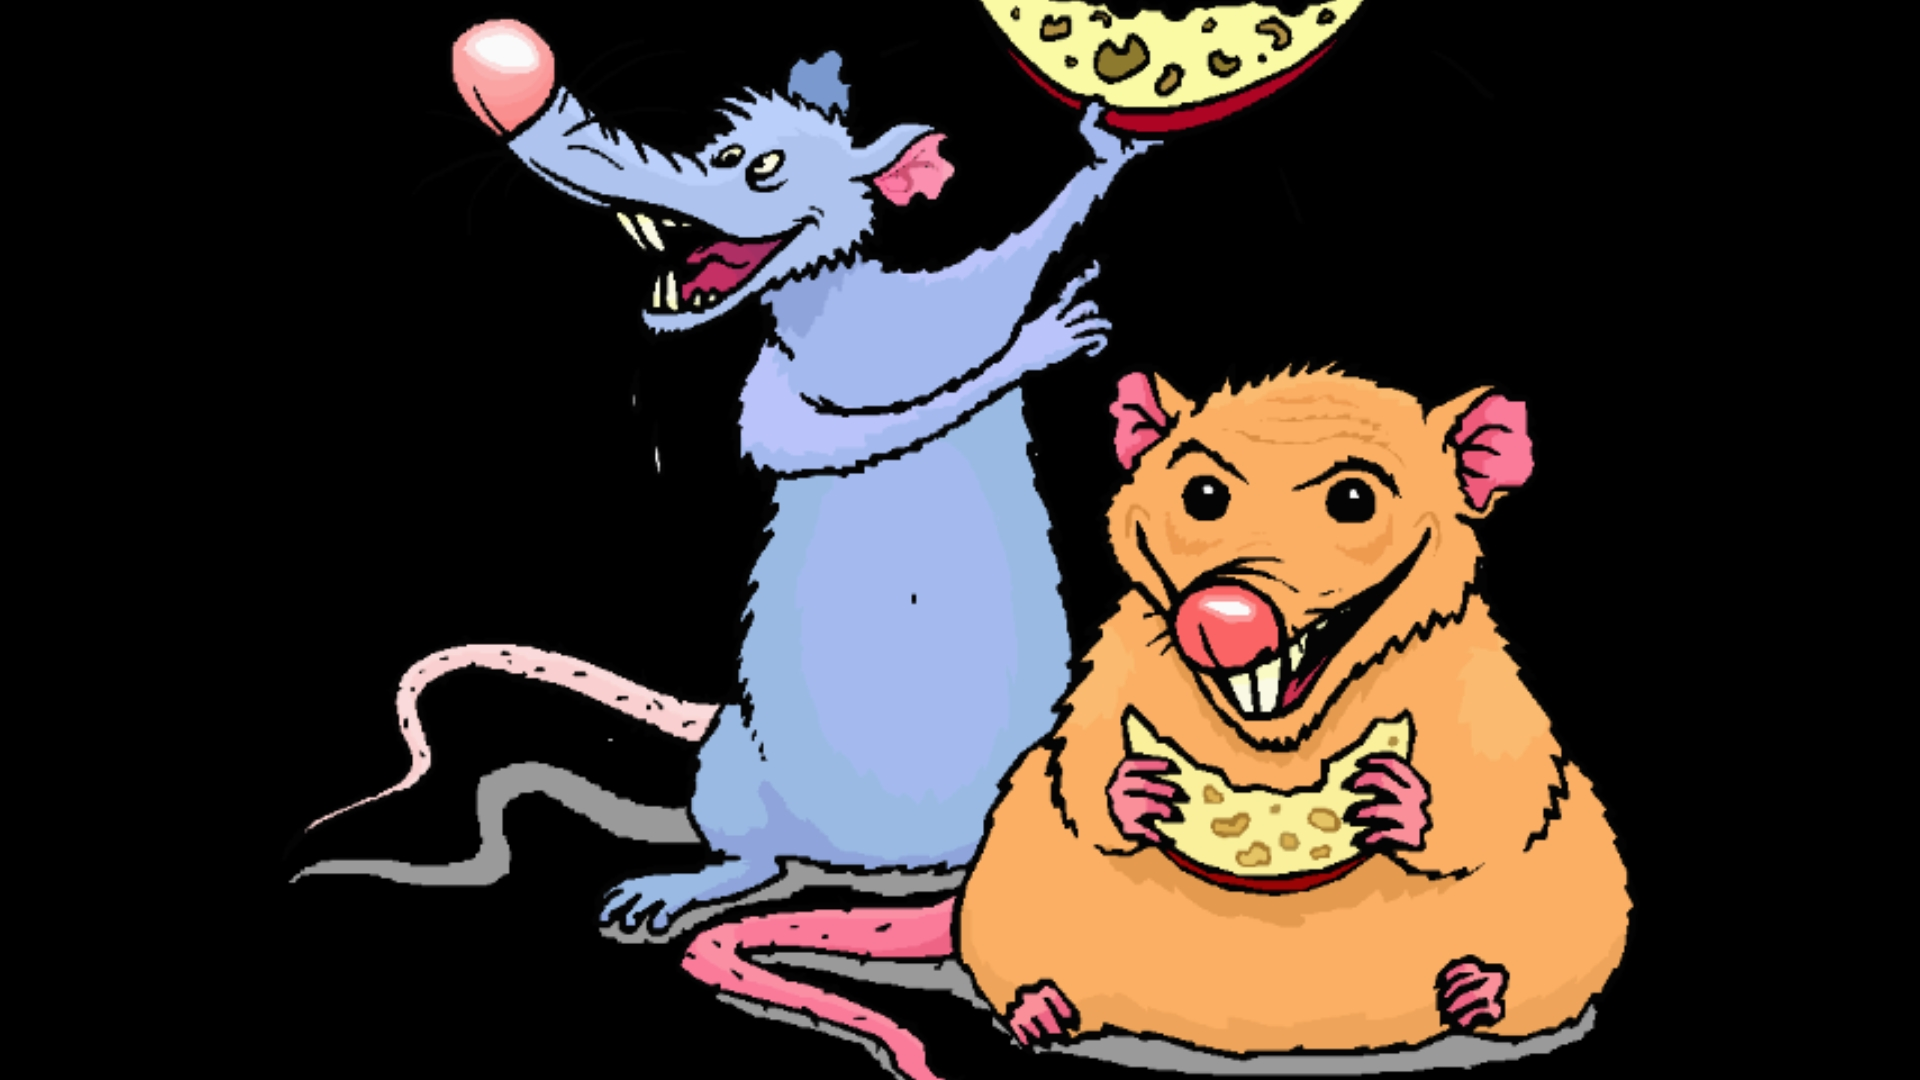 Urban Rat and Village Rat Panchatantra Story in English